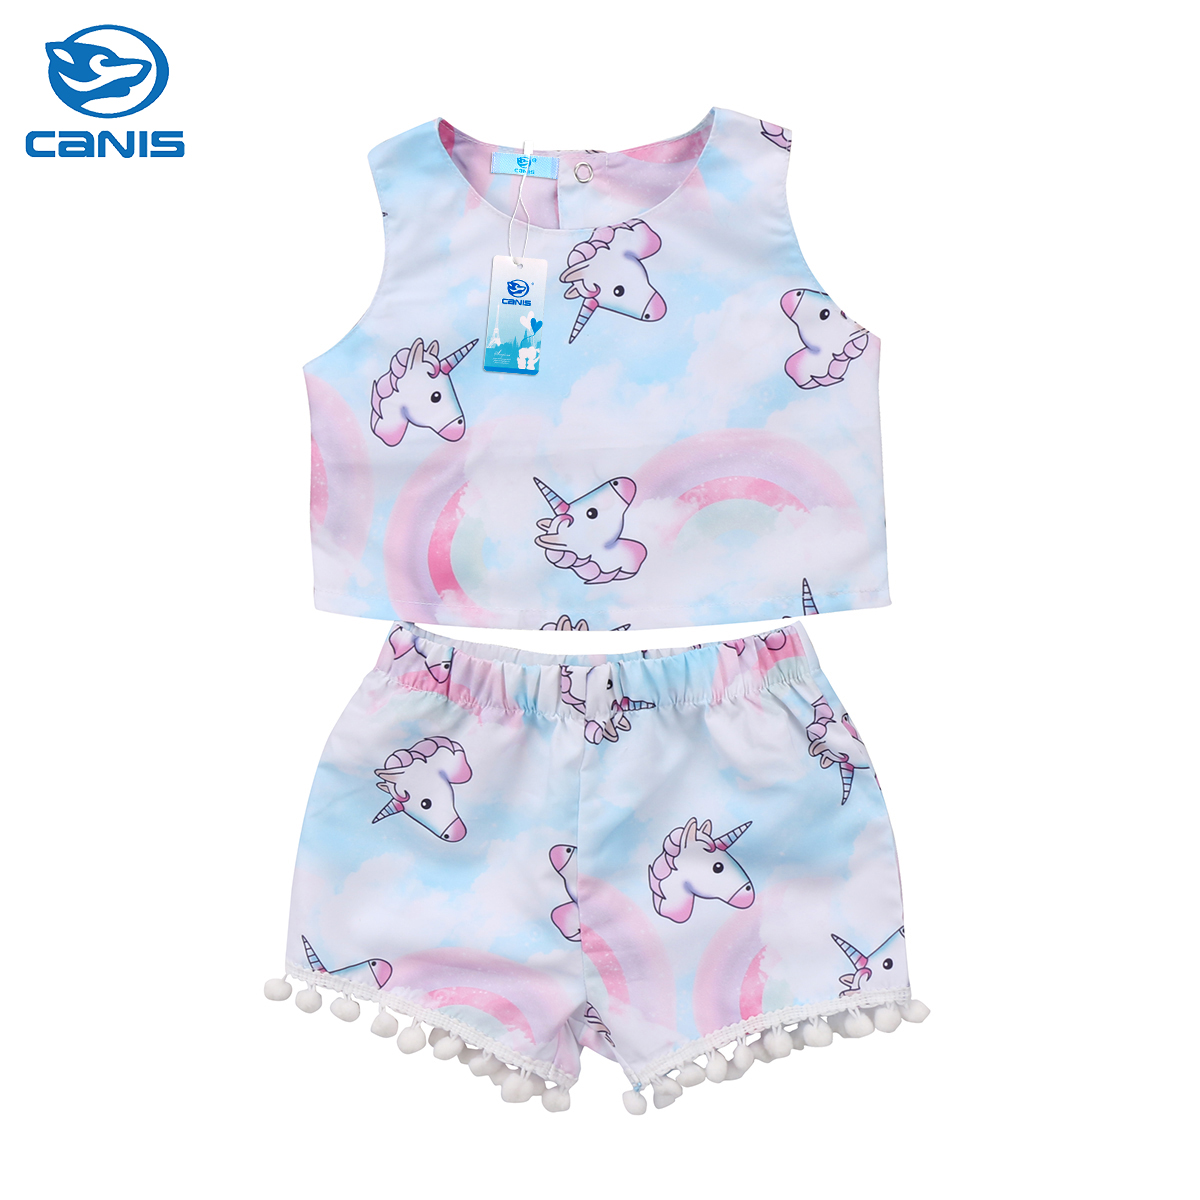 2018 Baby Girls Kids Set Unicorn Clothes Summer Short T-Shirt Tops Tassels Pants Legging Outfits Set Clothes toddler baby kids girls clothes sets summer lace tops t shirt short sleeve denim jeans pants cute outfits clothing set